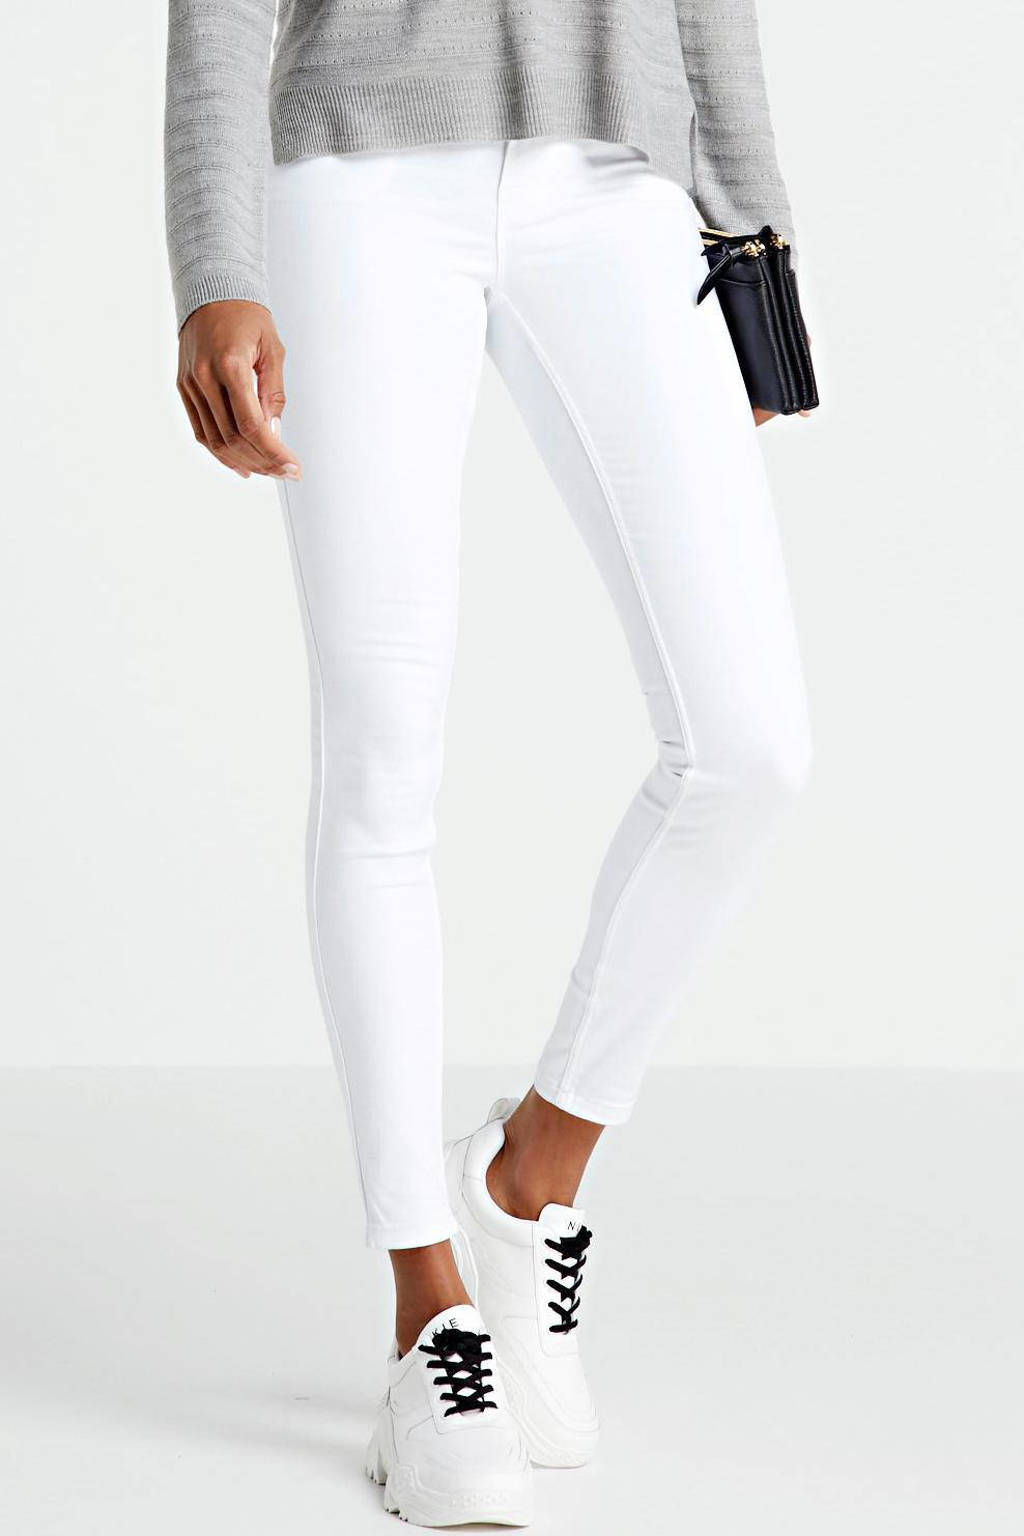 VERO MODA mid waist shape-up slim fit jeans VMSEVEN bright white, Wit